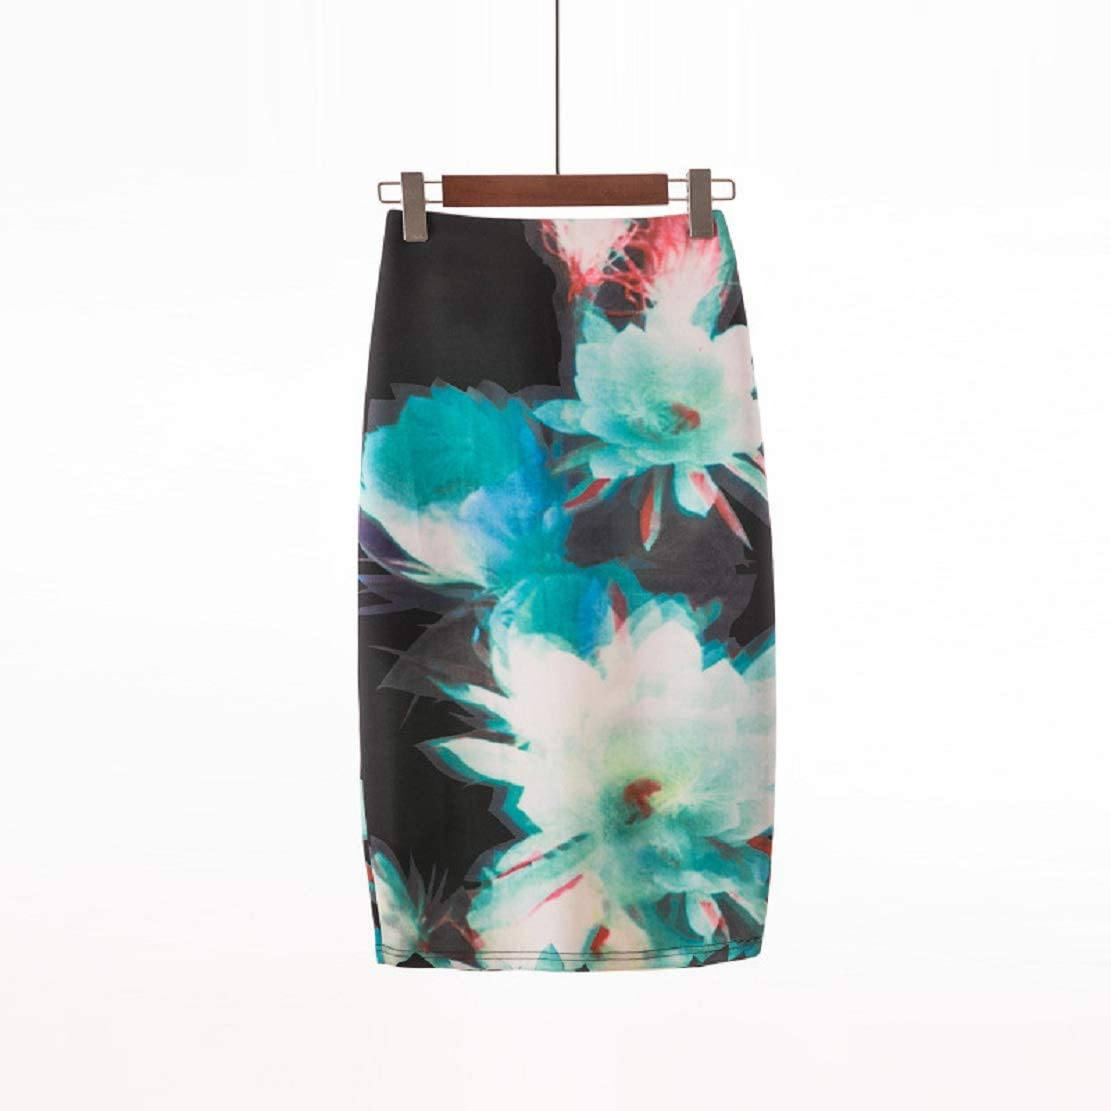 Women Pencil Midi Skirt Comfort Stretch Bodycon Knee High Skirt Office Lady Floral Print Elastic Slim Skirt by Lowprofile